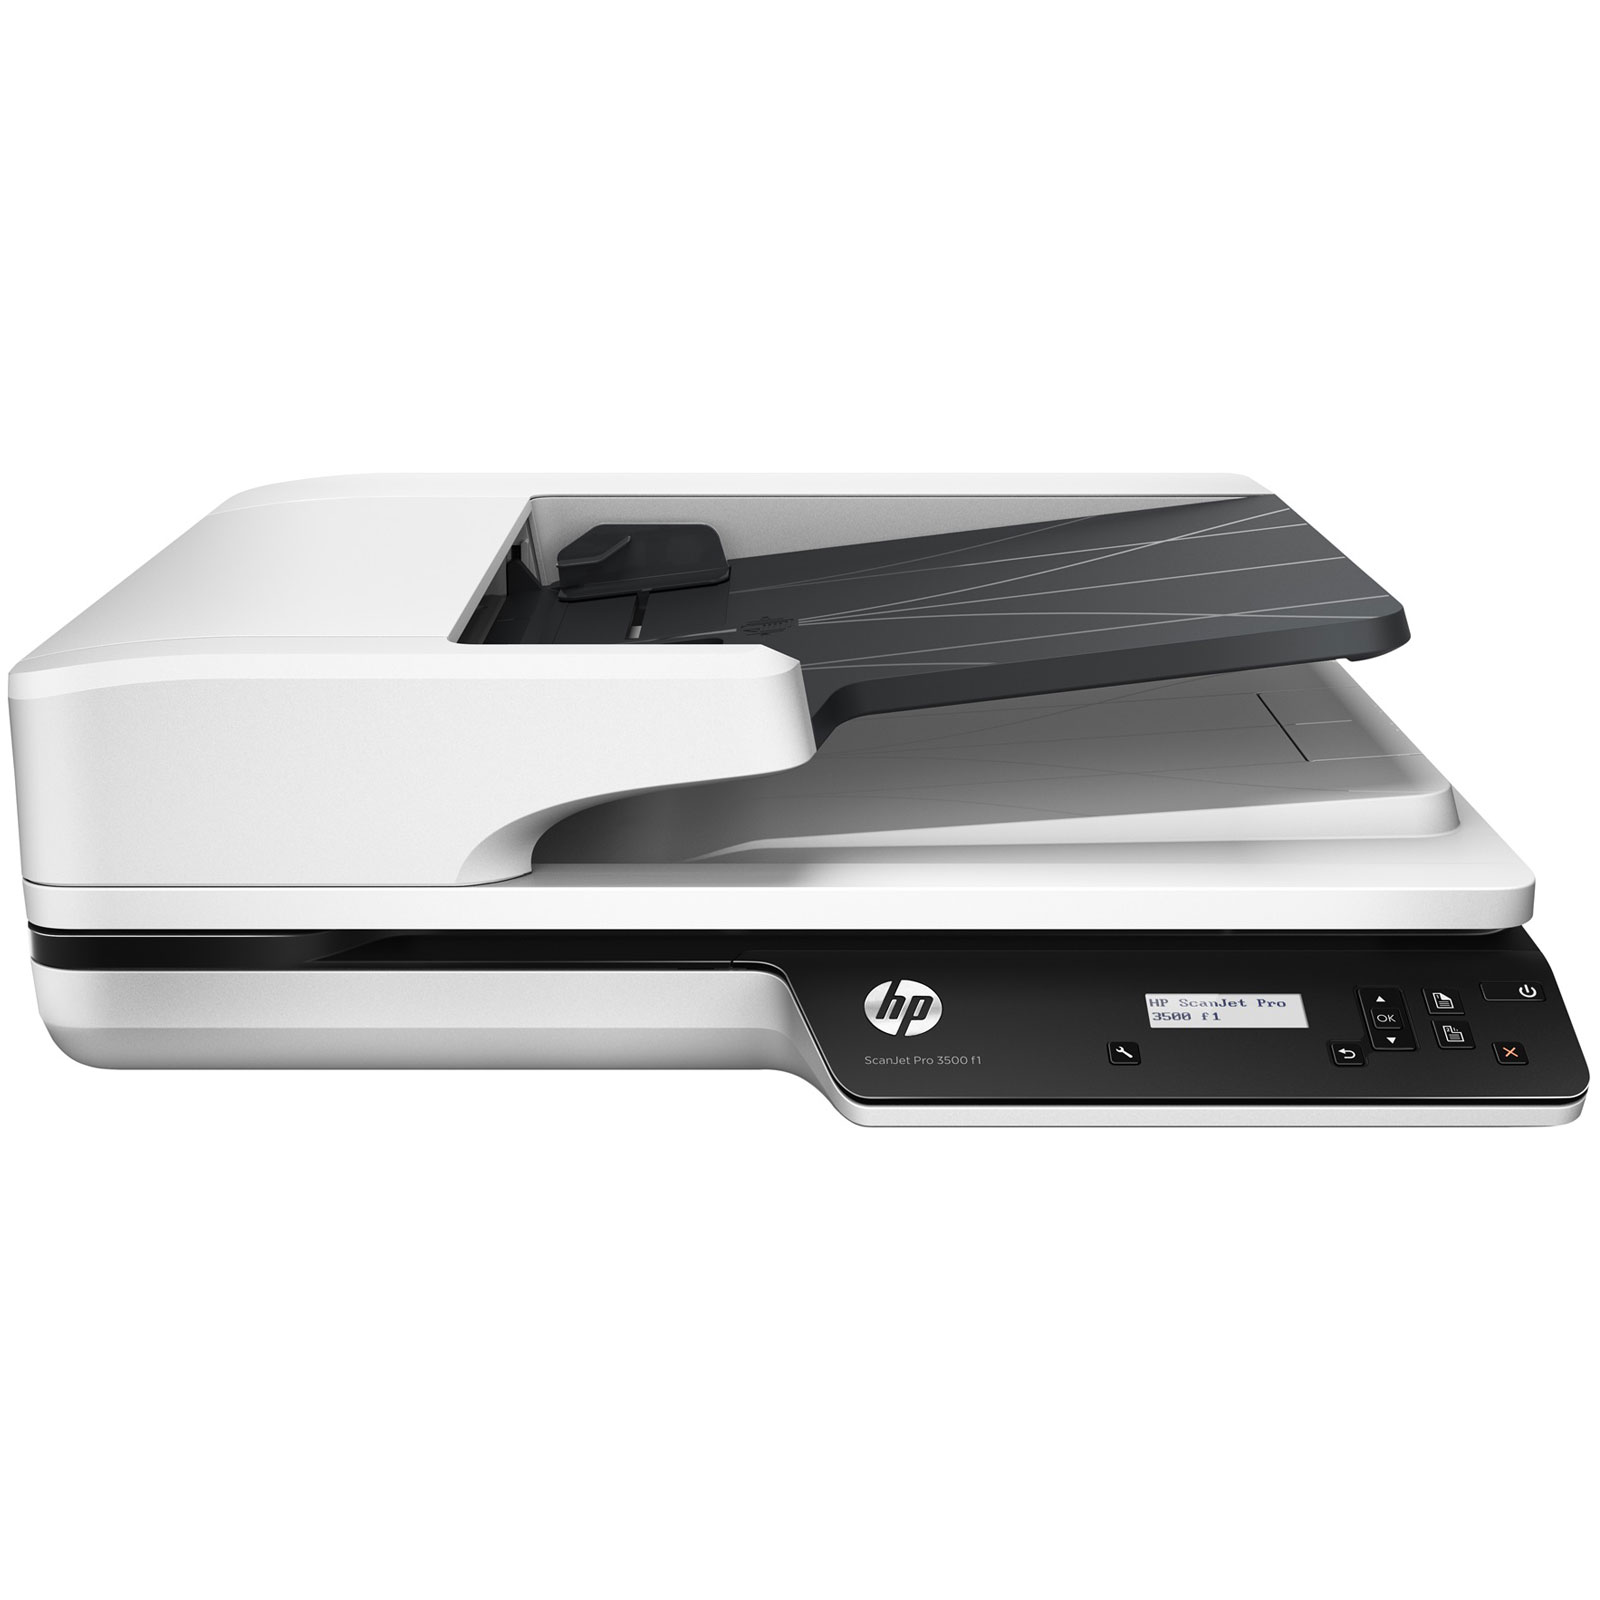 hp scanjet pro 3500 f1 scanner hp sur. Black Bedroom Furniture Sets. Home Design Ideas